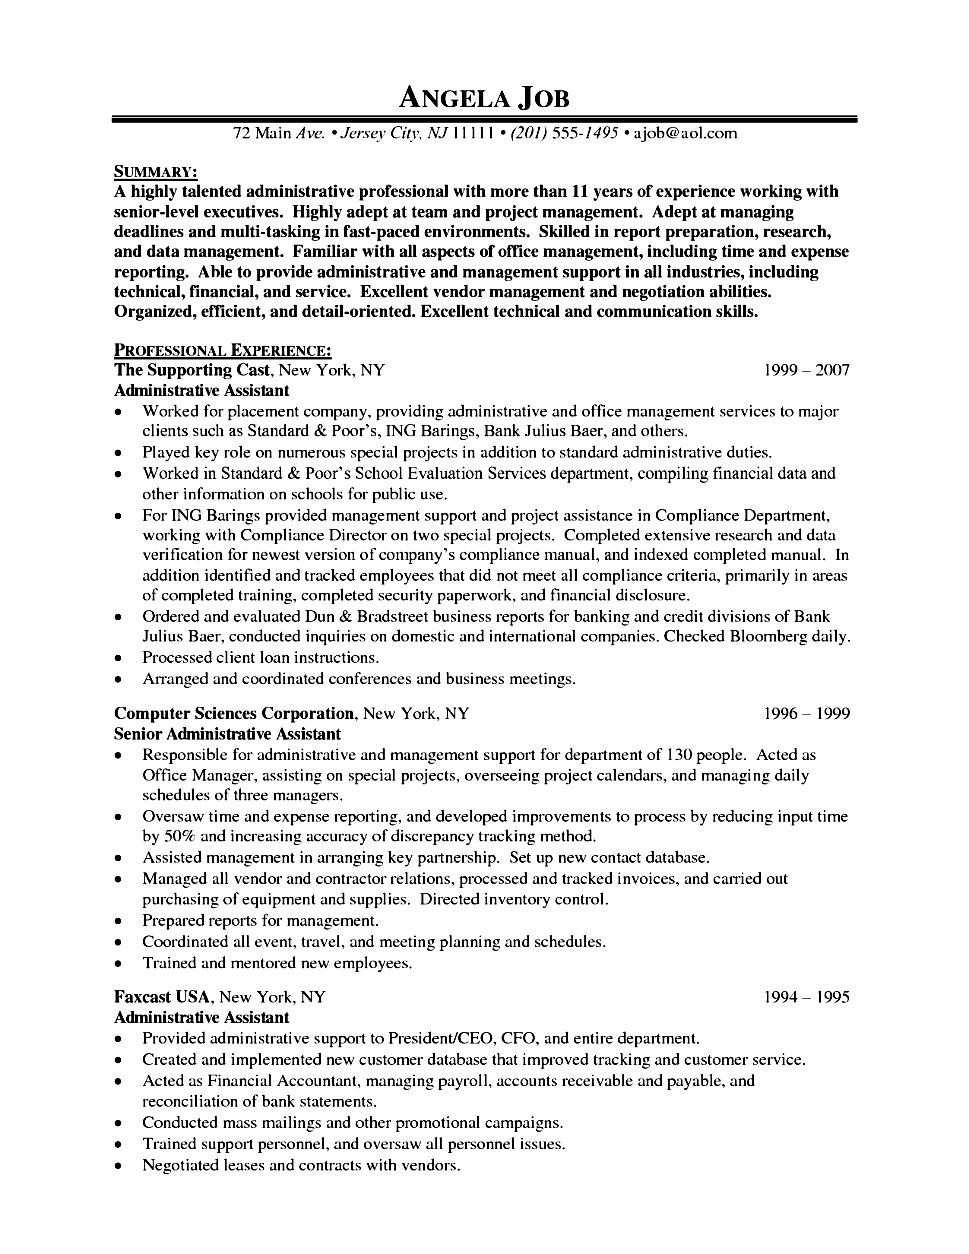 Executive Assistant Resume Bullet Points Free Samples